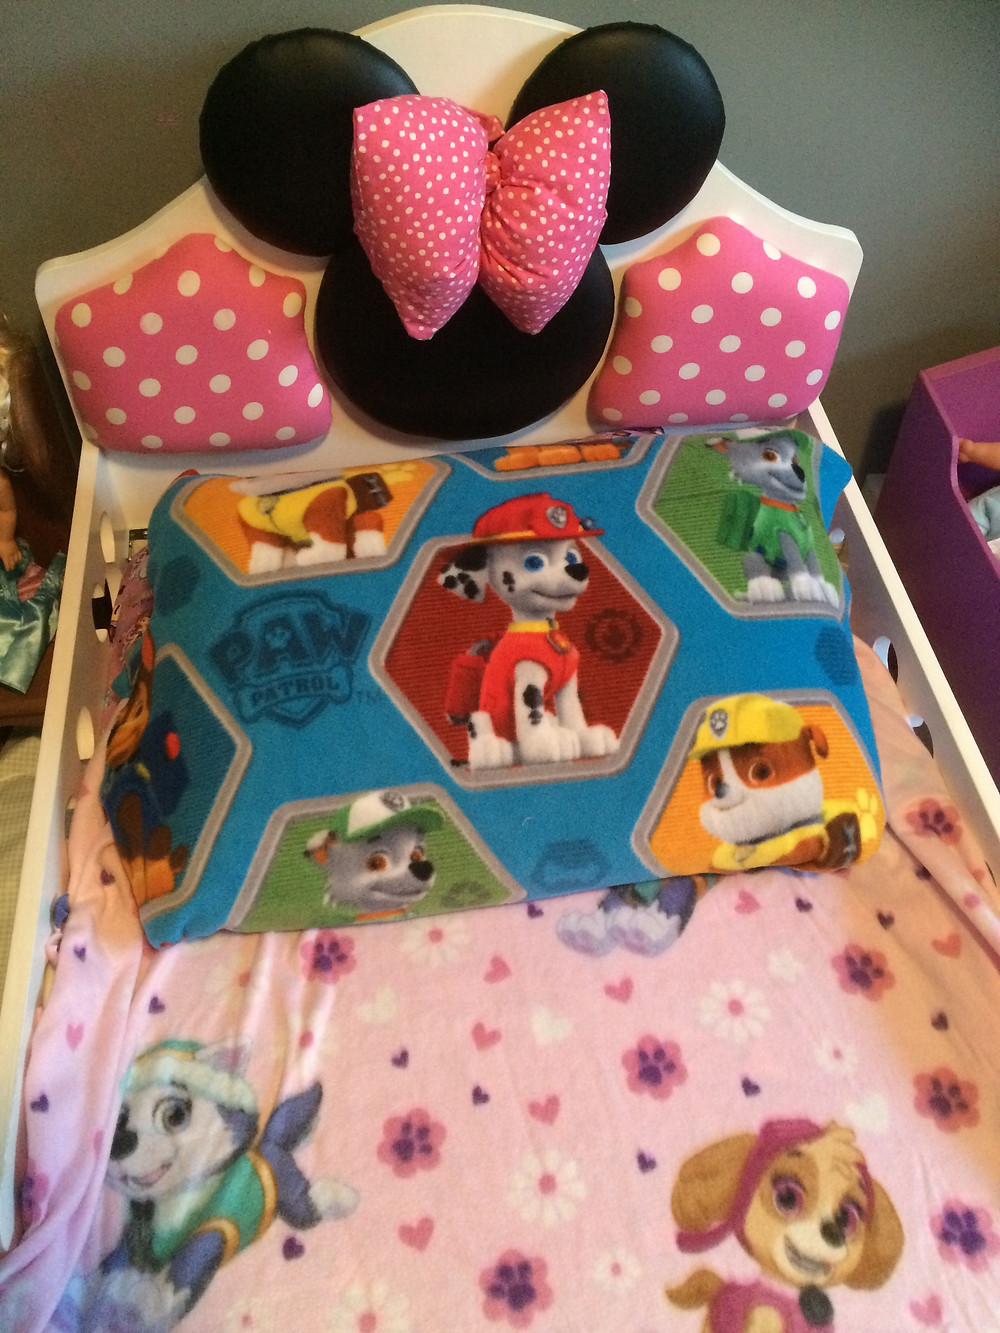 Paw patrol blanket and pillow